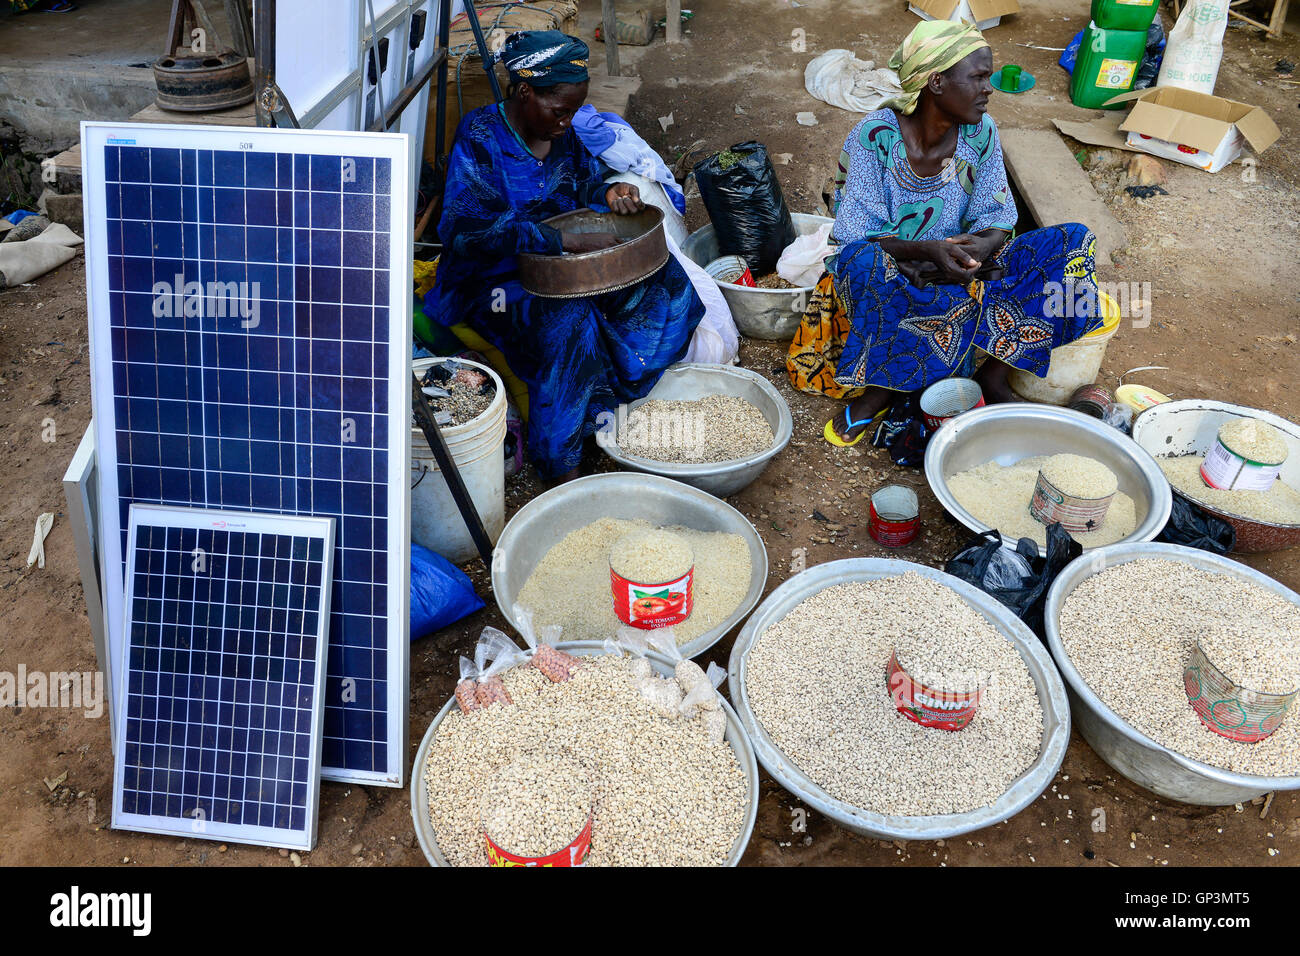 BURKINA FASO, Provinz Poni, Gaoua, weekly market with food crops and solar panels / Gaoua, Markt, Verkauf Bohnen, Stock Photo